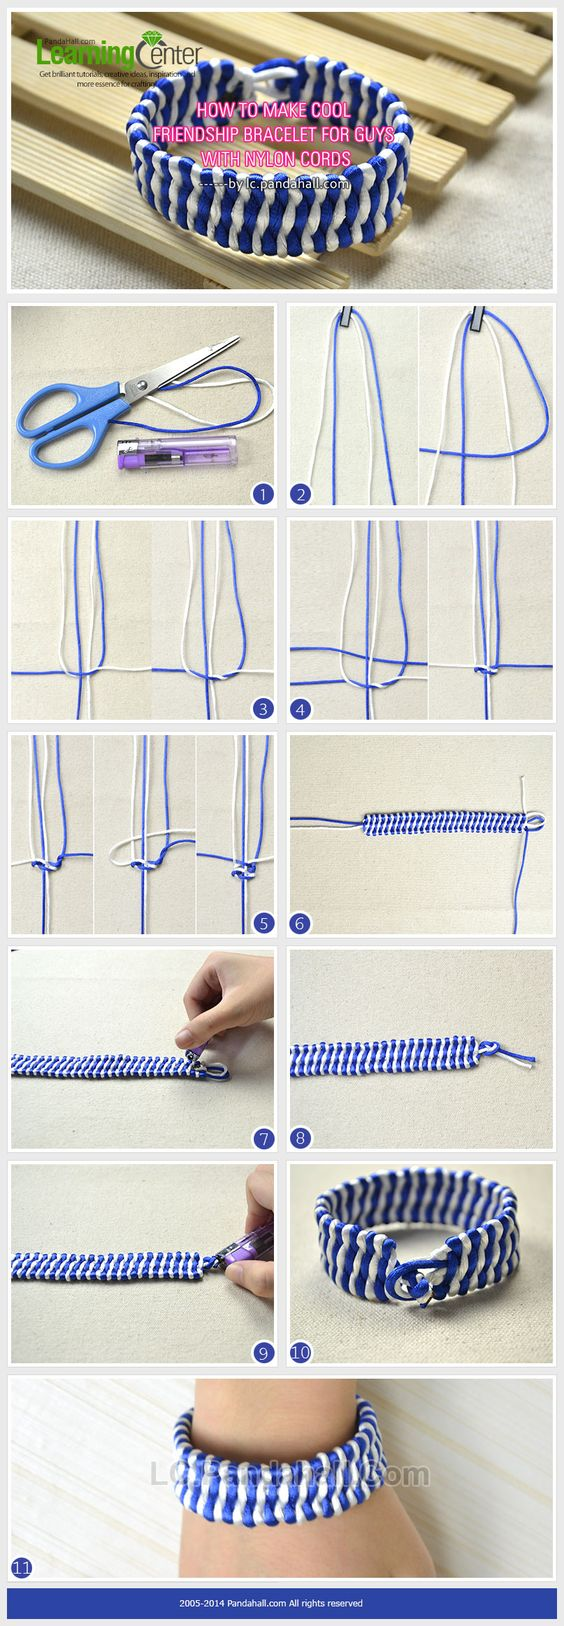 how to make friendship bracelets with thread